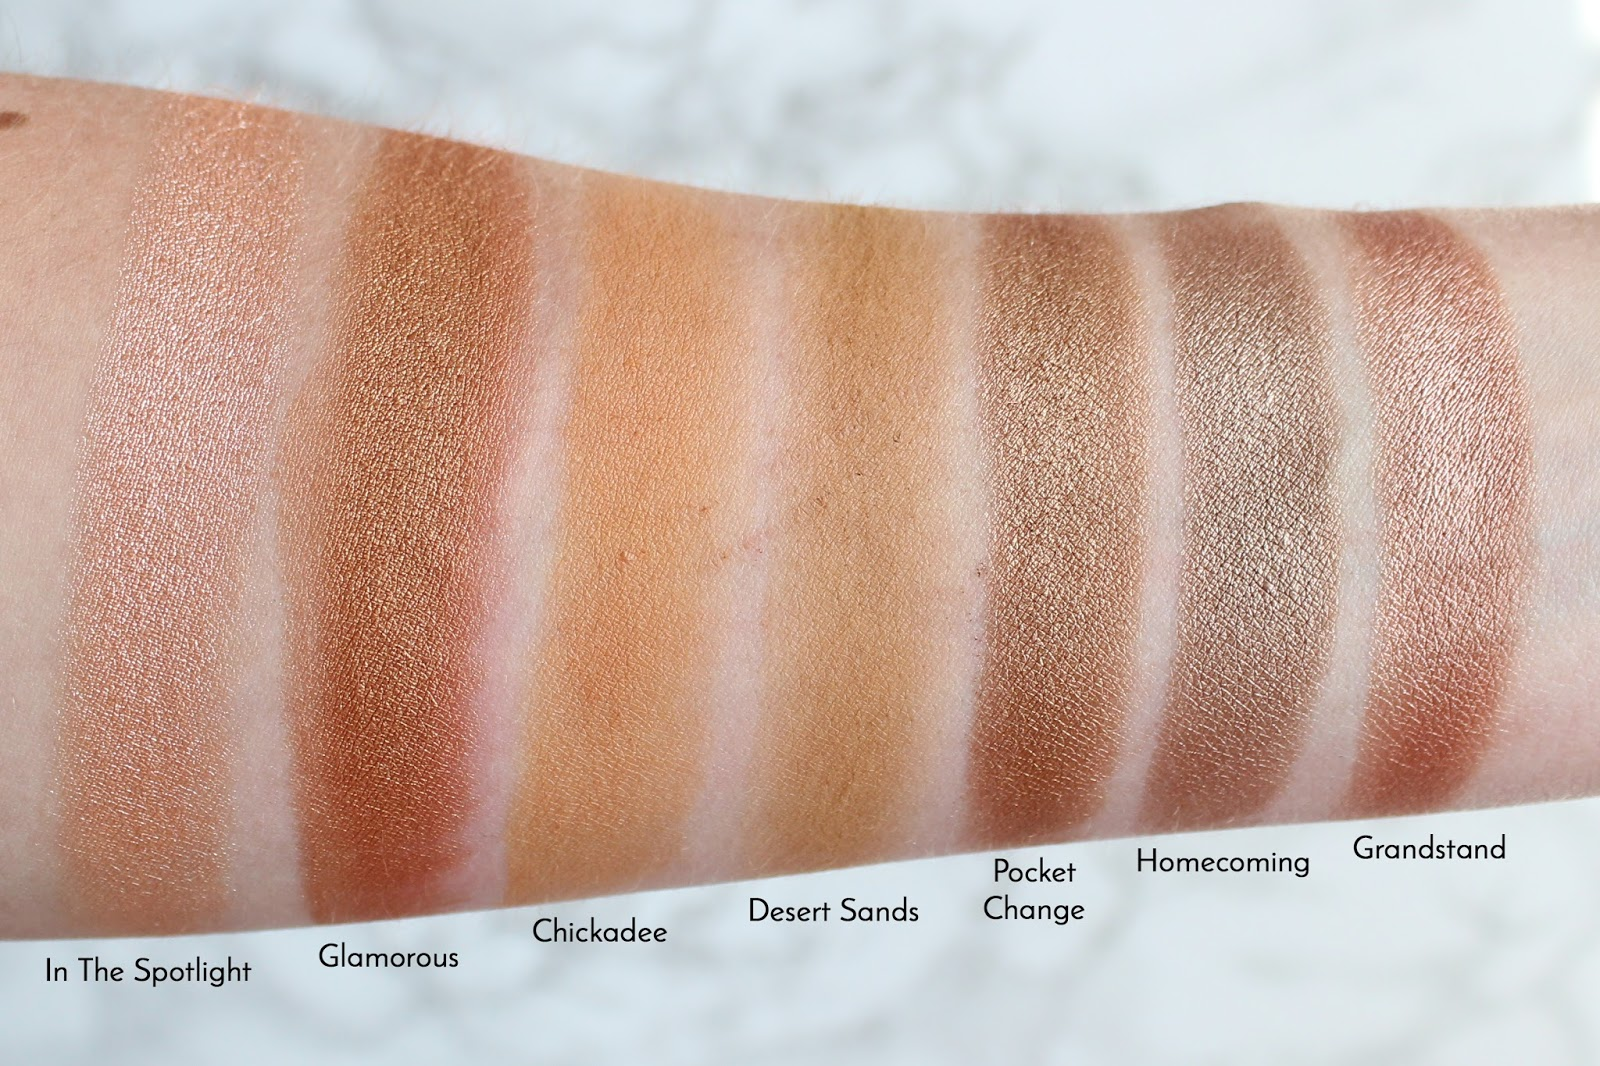 I Finally Finished My Makeup Geek Palette | Review & SwatchesI Finally Finished My Makeup Geek